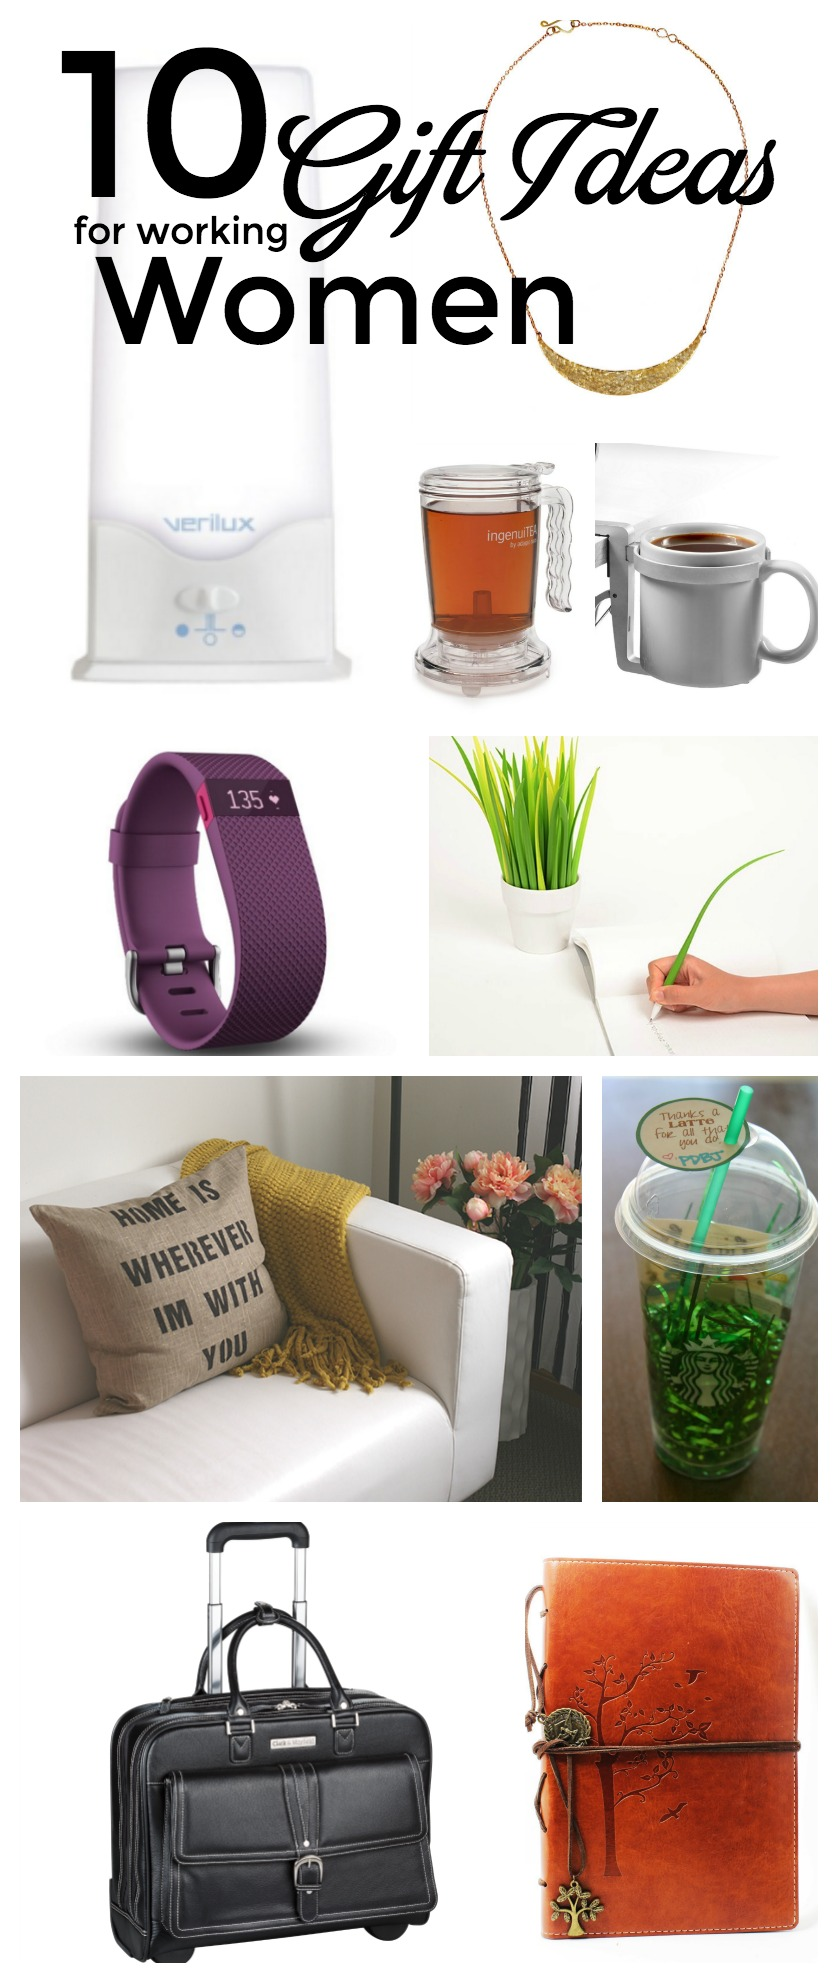 10 Gift Ideas for Working Women